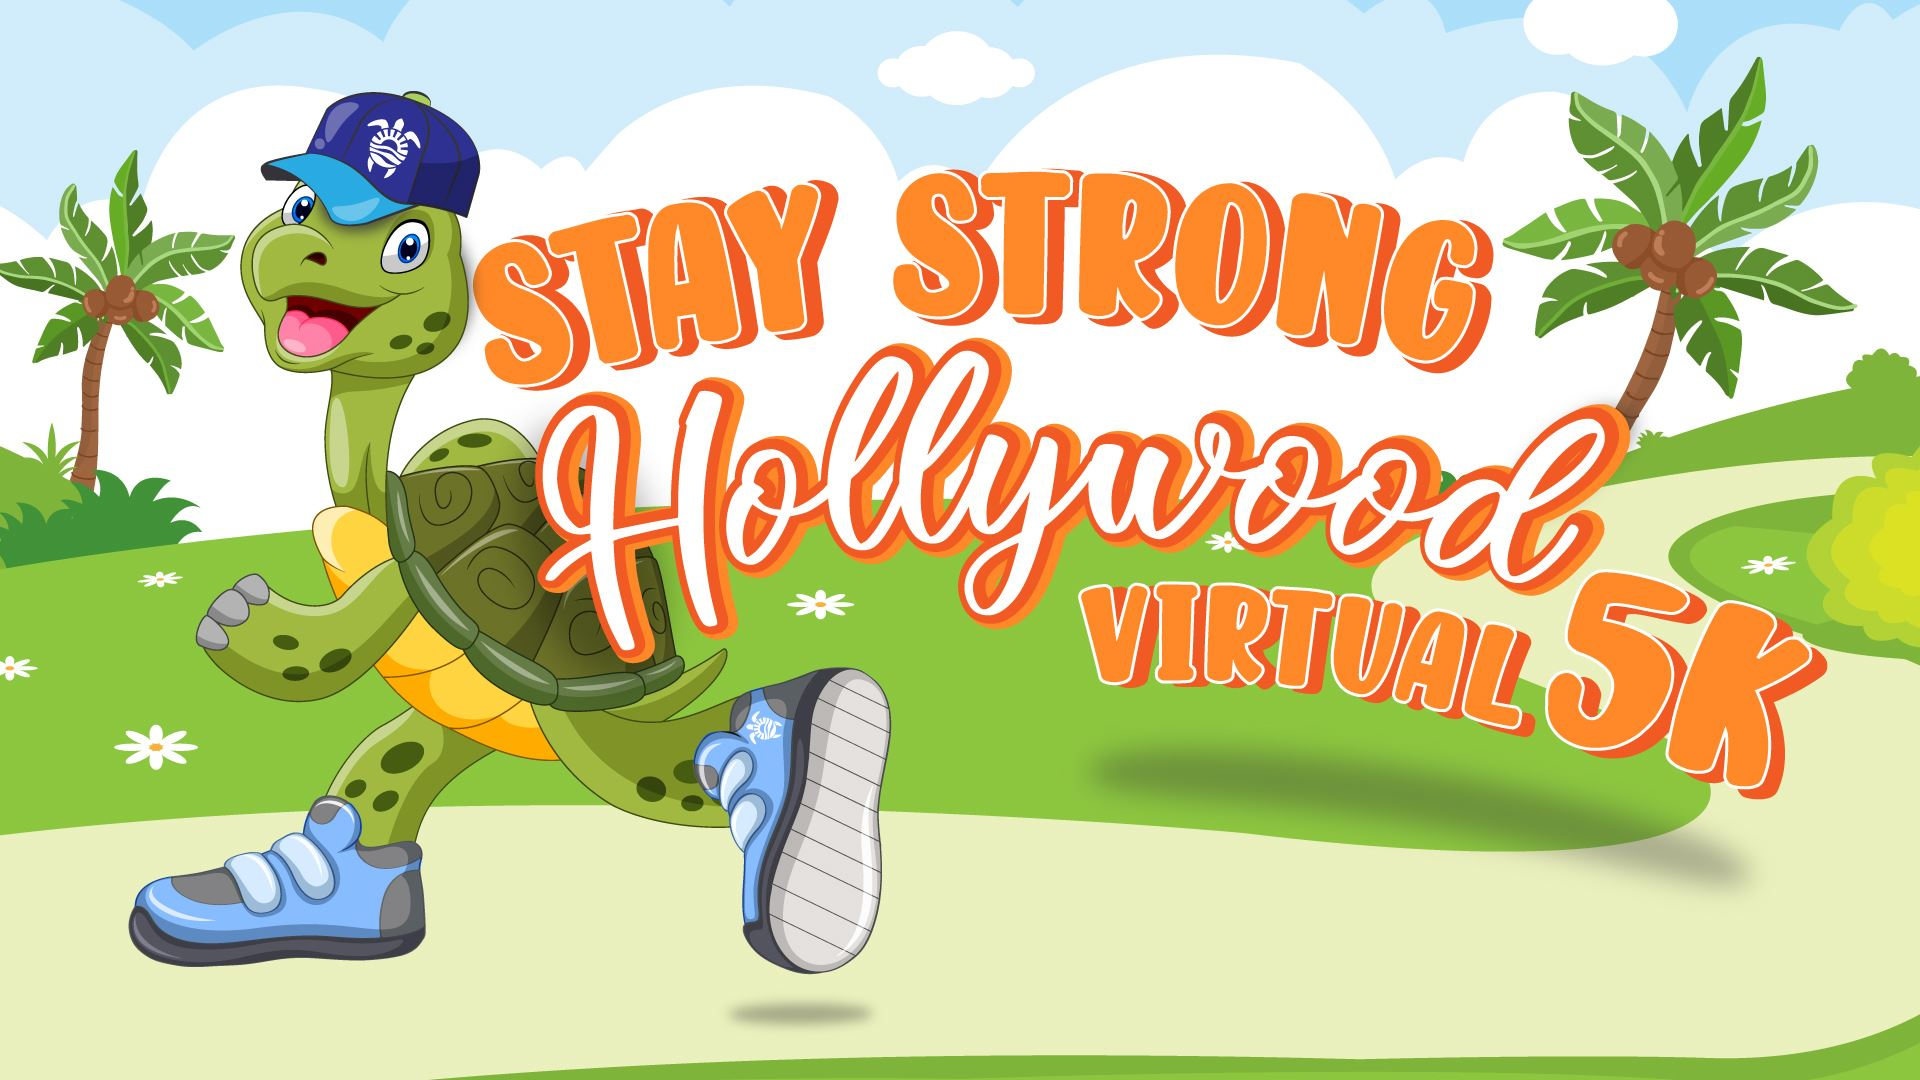 Stay Strong Hollywood Virtual 5 K Flyer